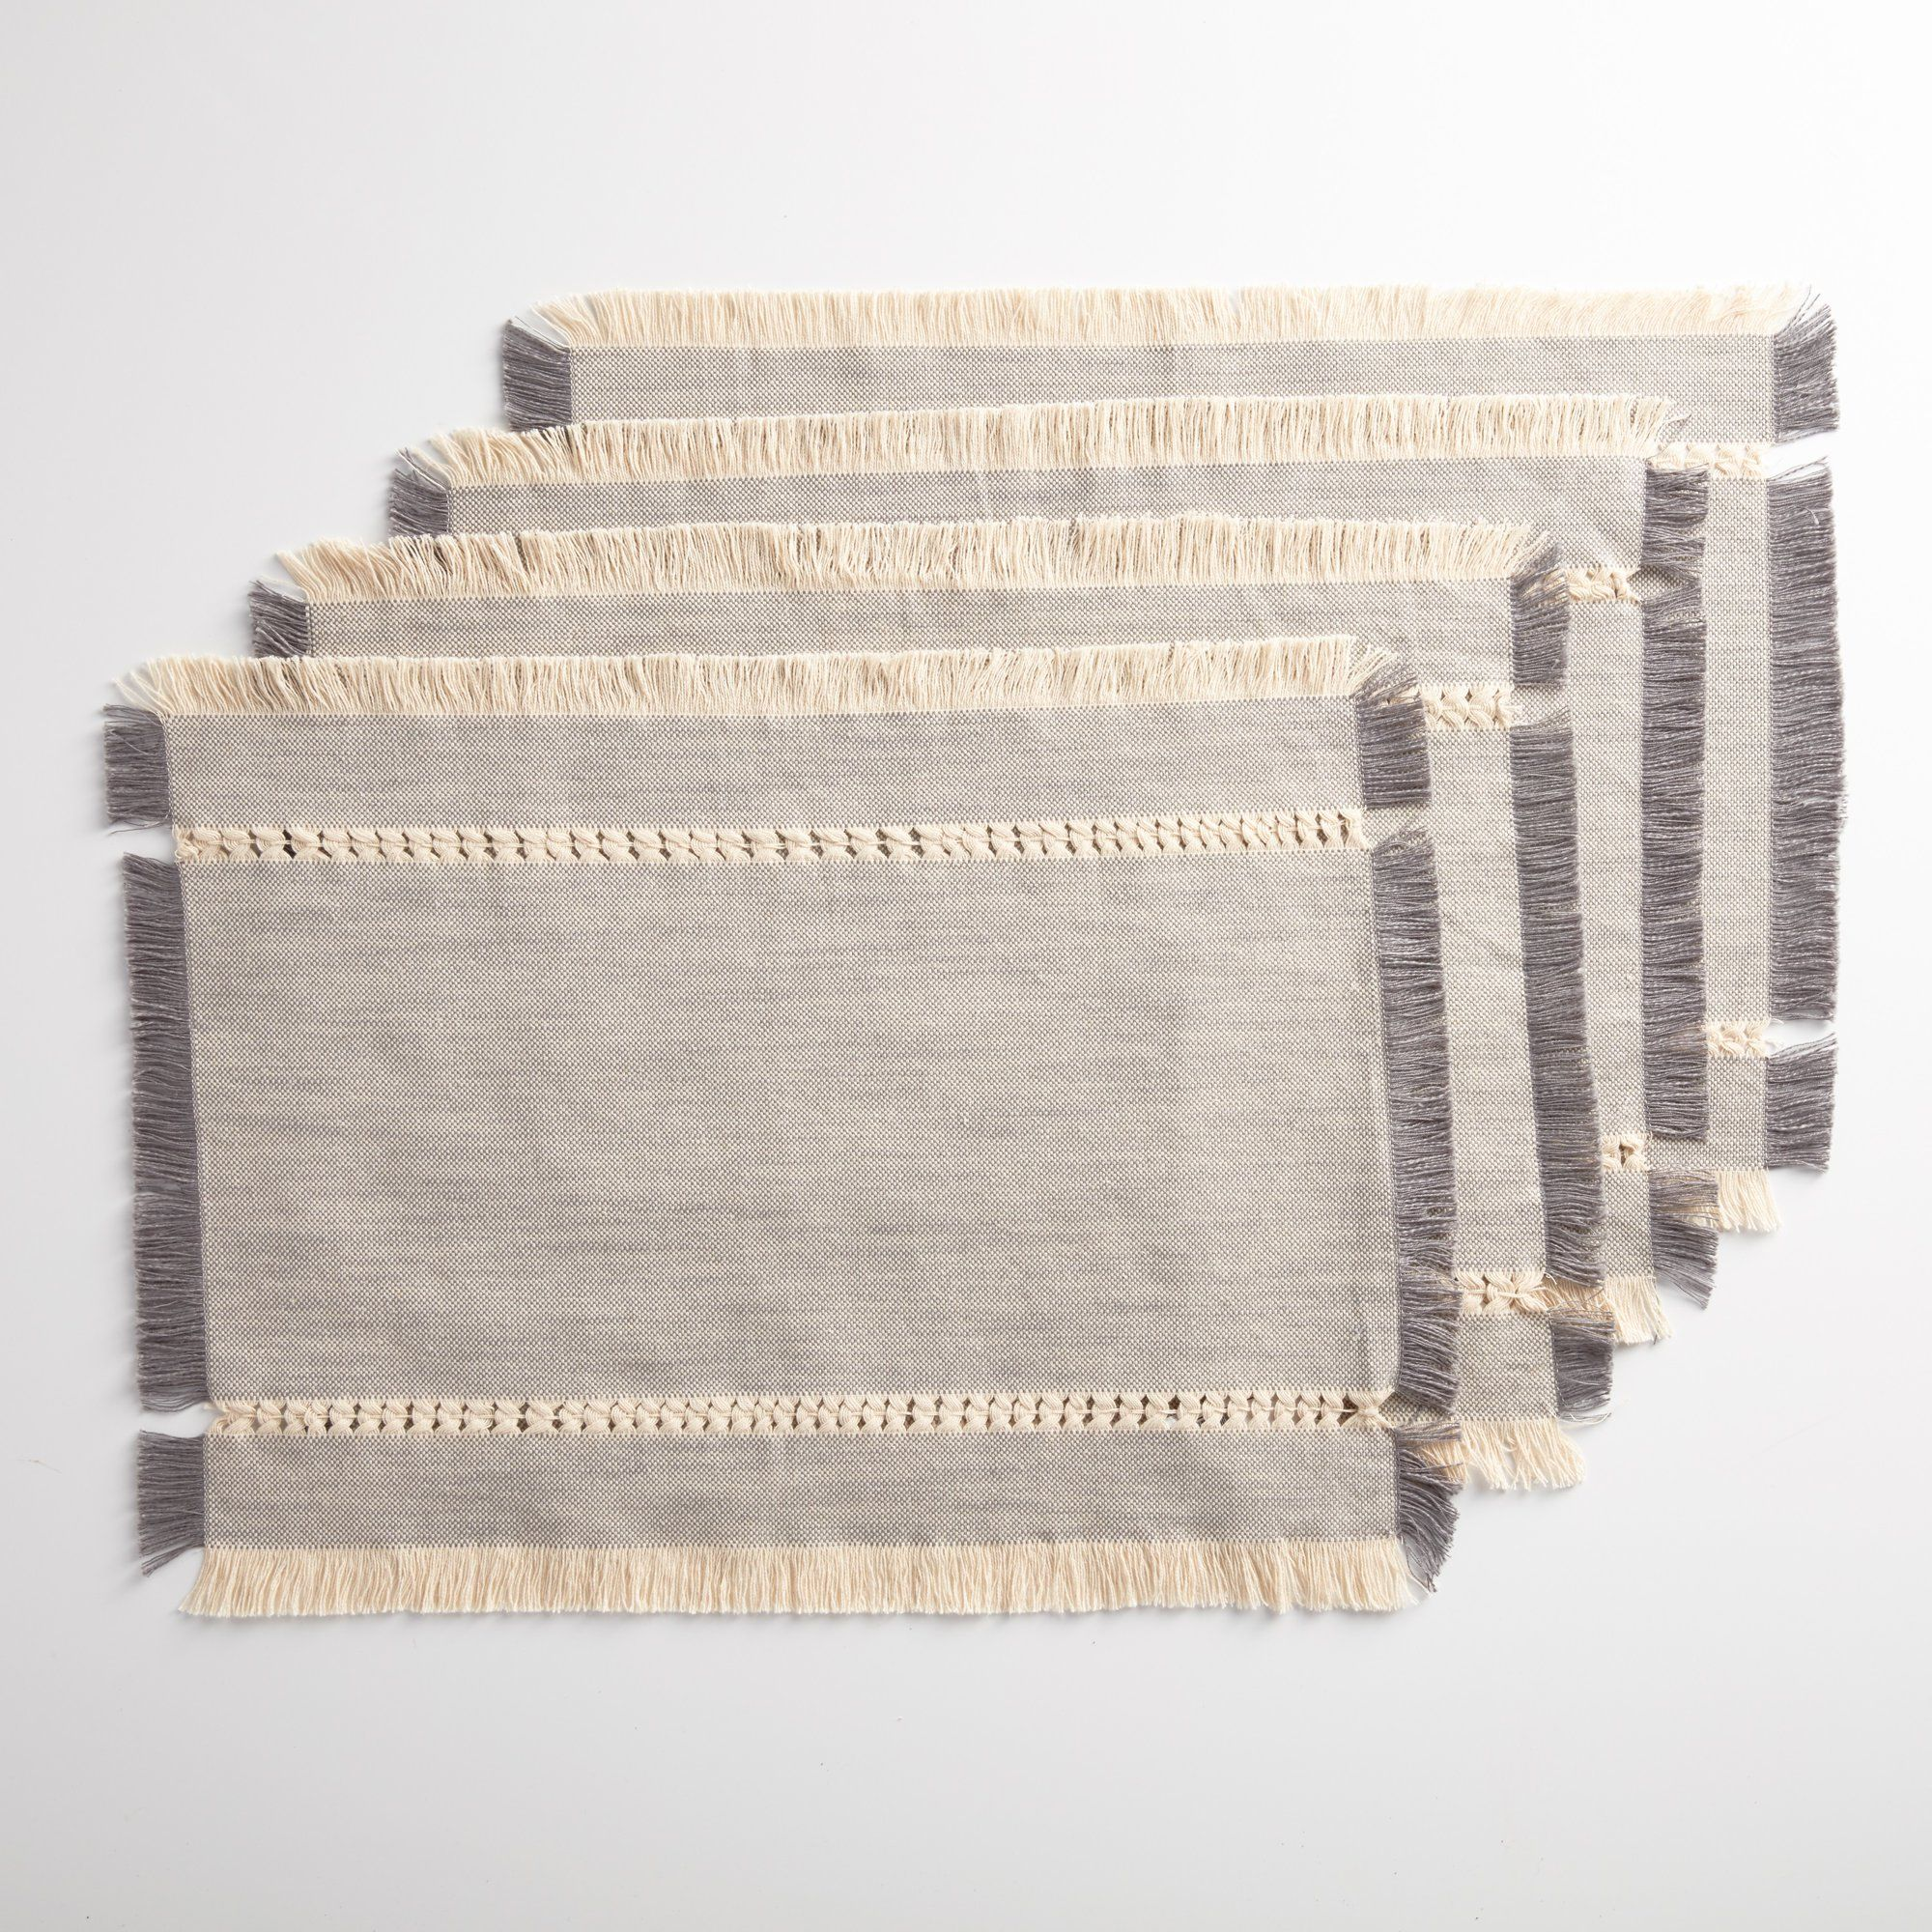 Better Homes Gardens Woven Table Placemat With Fringe Gray 4 Piece Set Walmart Com In 2021 Woven Placemats Placemats Grey Placemats